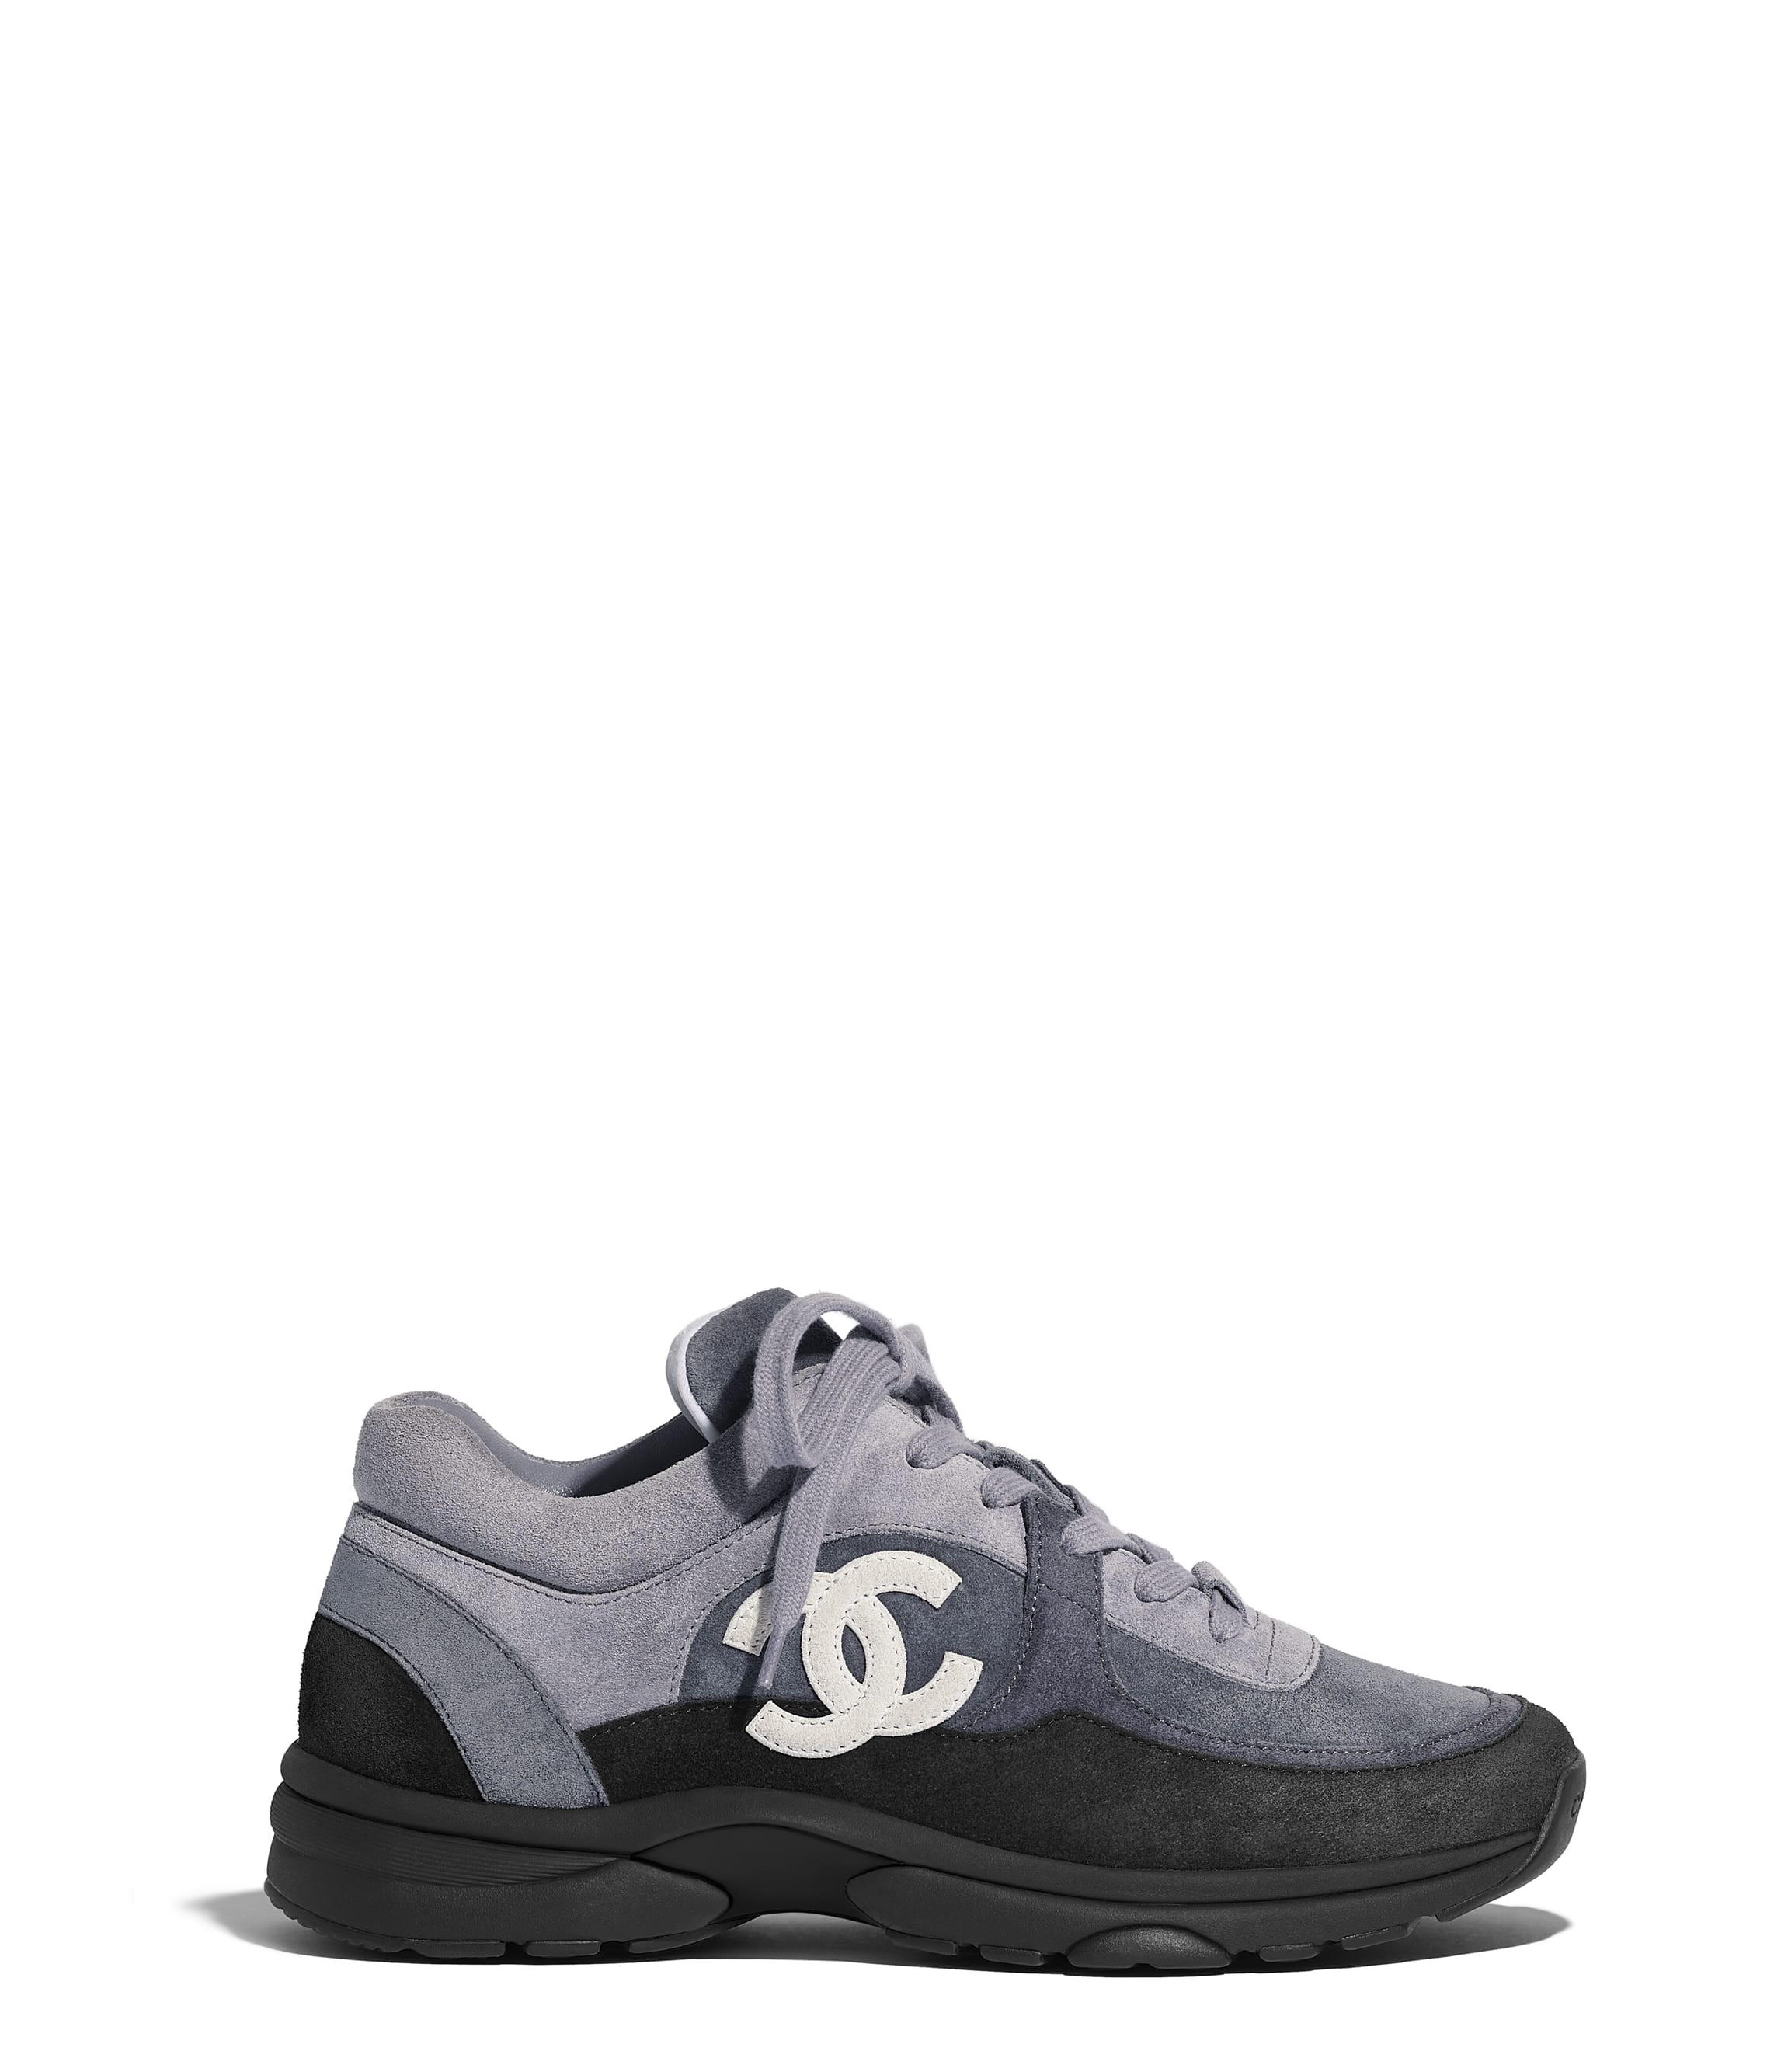 899b7d403db3 Sneakers - Shoes - CHANEL